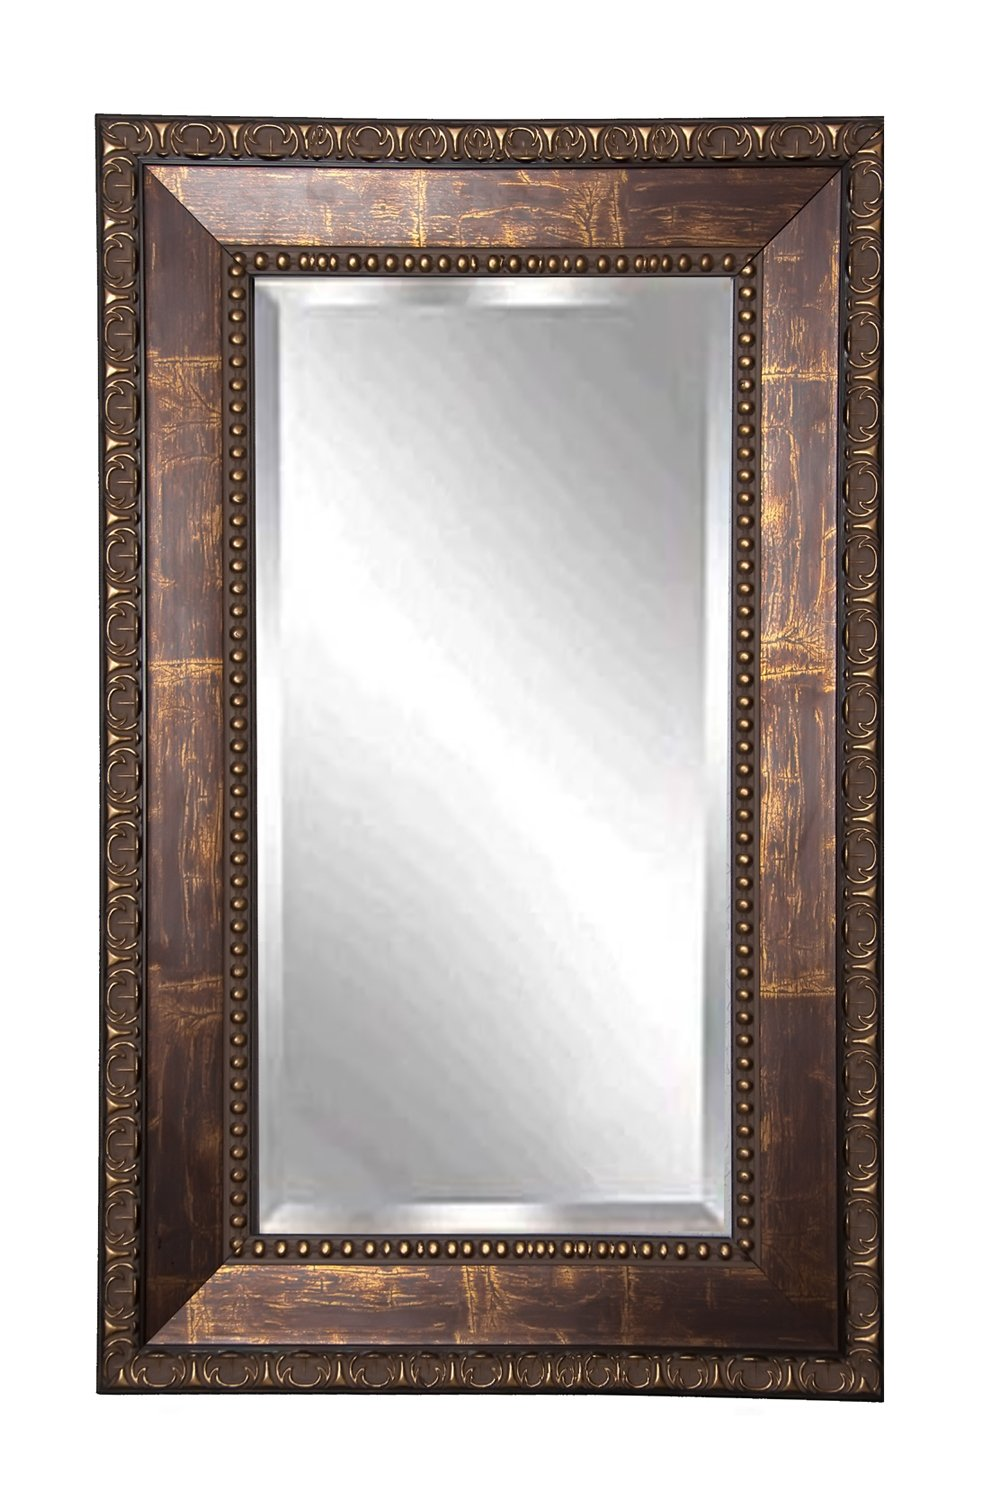 Amazon.com: American Made Rayne Roman Copper Bronze Beveled Wall ...